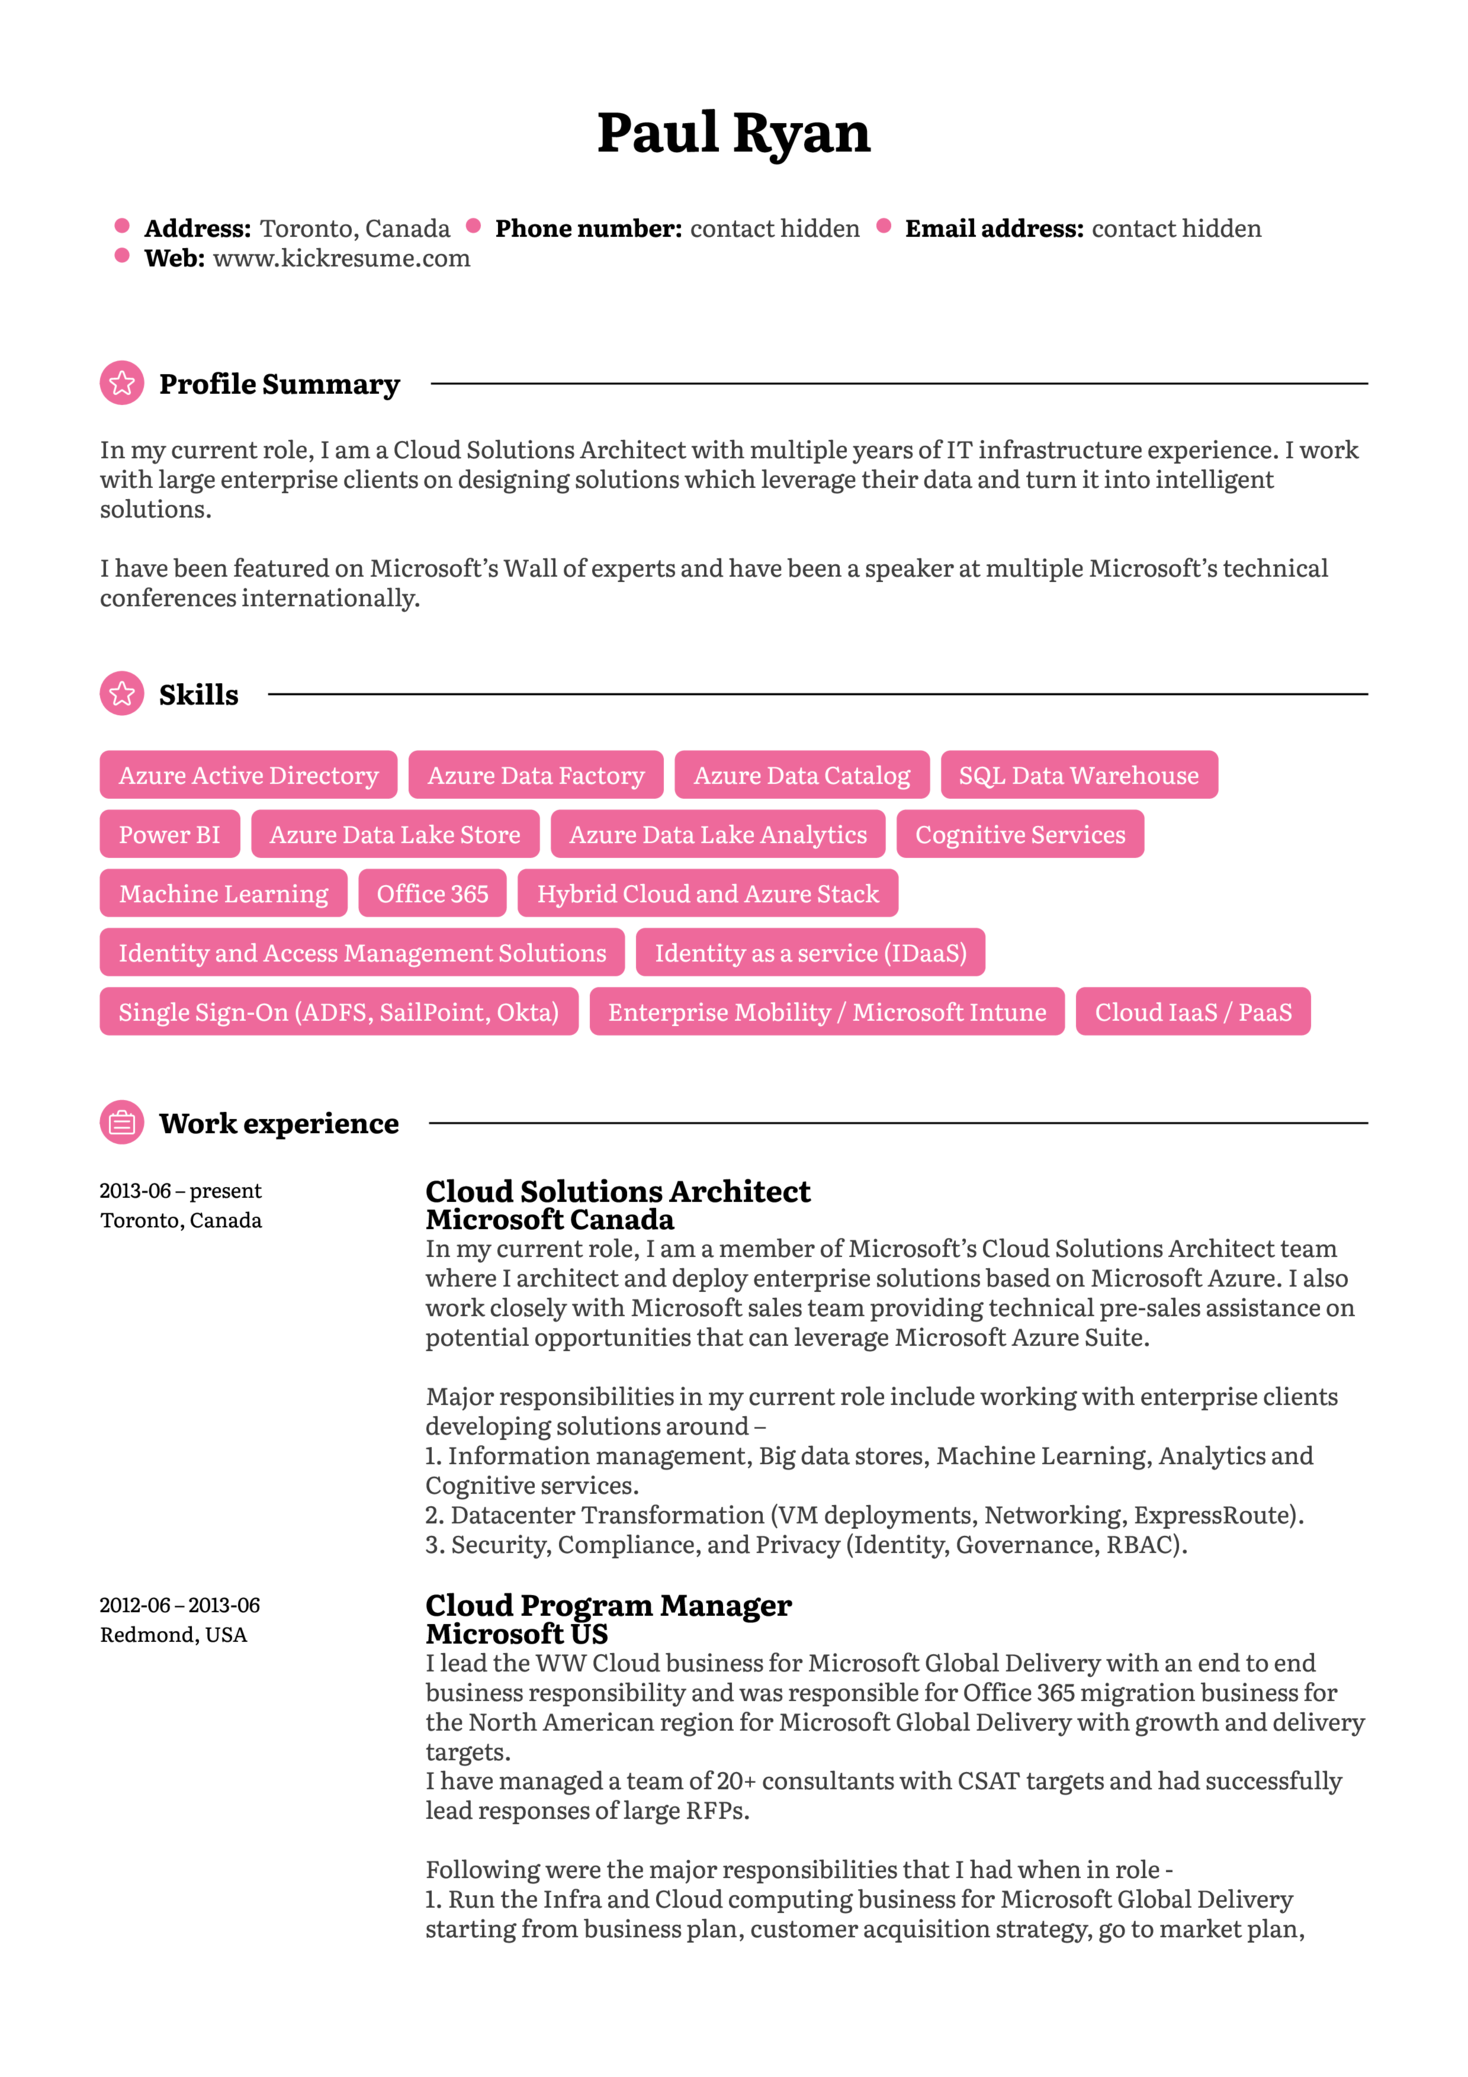 Program Manager Resume Beauteous Resume Examples By Real People Microsoft Cloud Program Manager